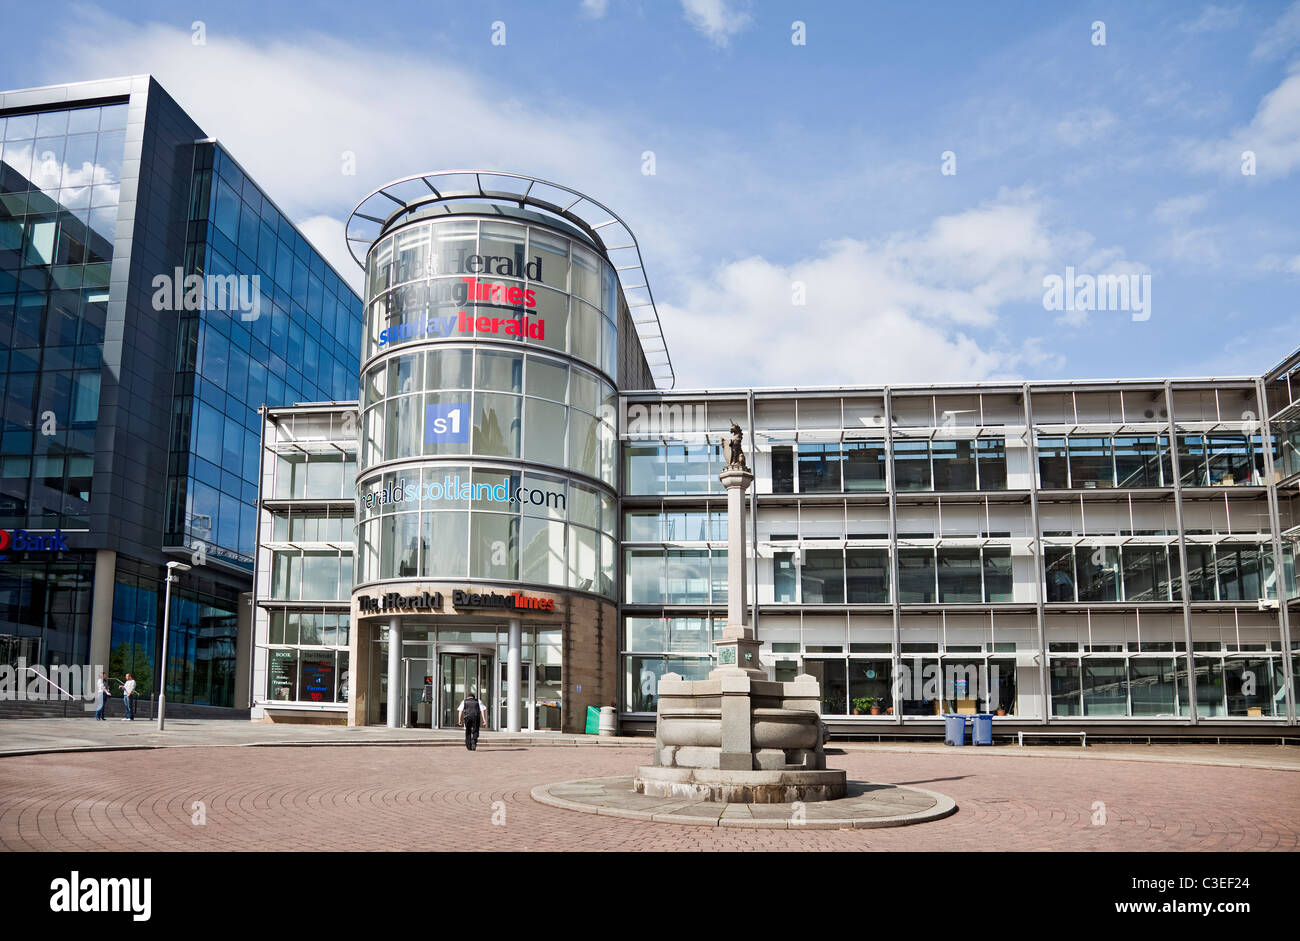 Glasgow HQ owned by Newsquest, incorporating The Herald, Sunday Herald, Evening Times, S1. William Annan Fountain - Stock Image